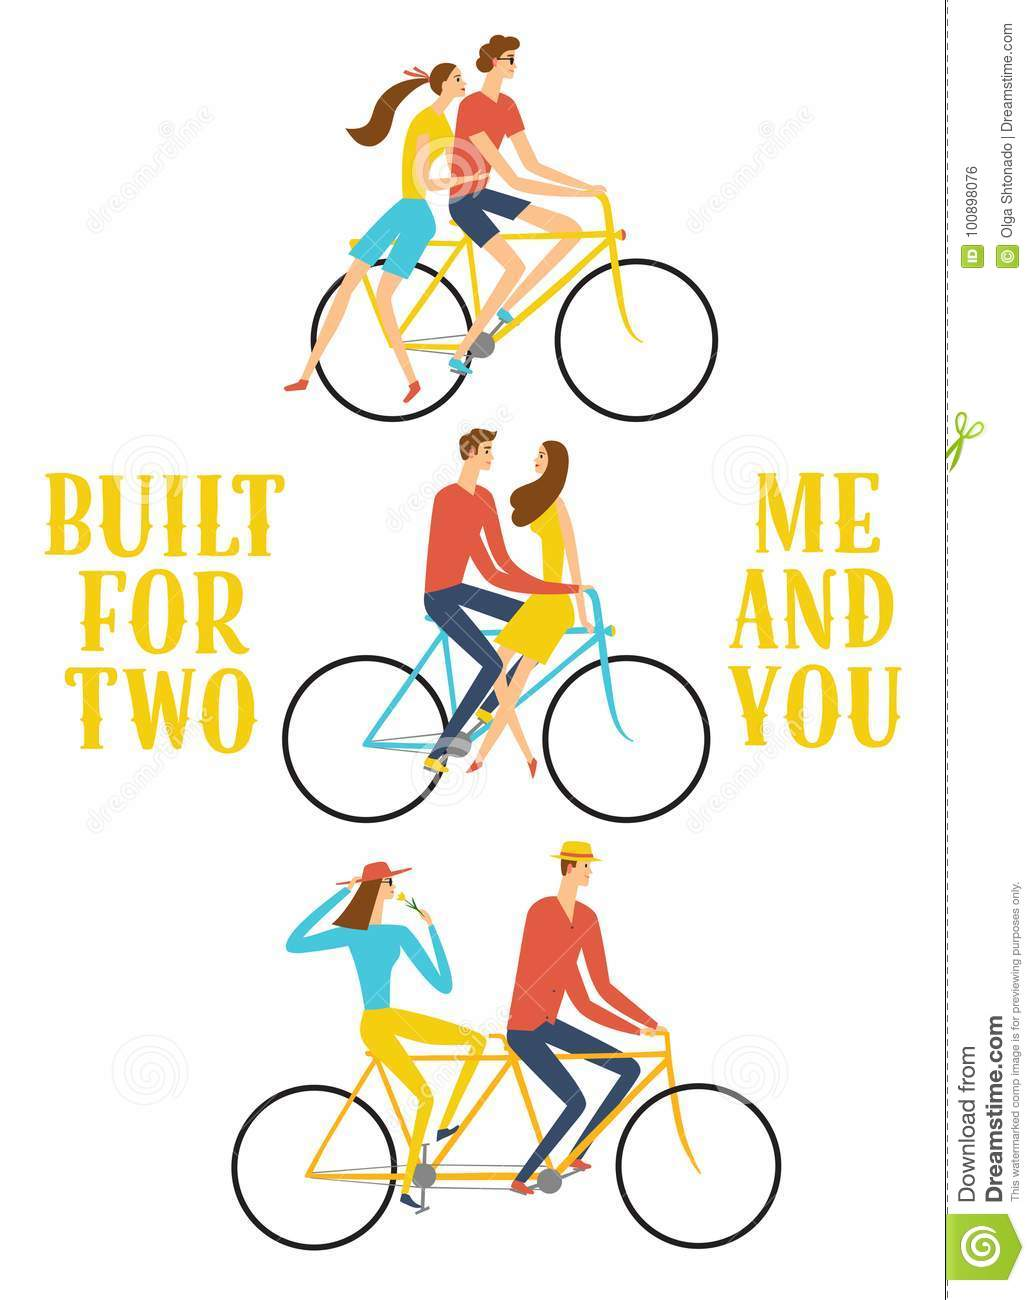 Set of cartoon pairs in love riding a bicycle. Built for two me and you  title. Love and romantic illustration for your design. d038f3314